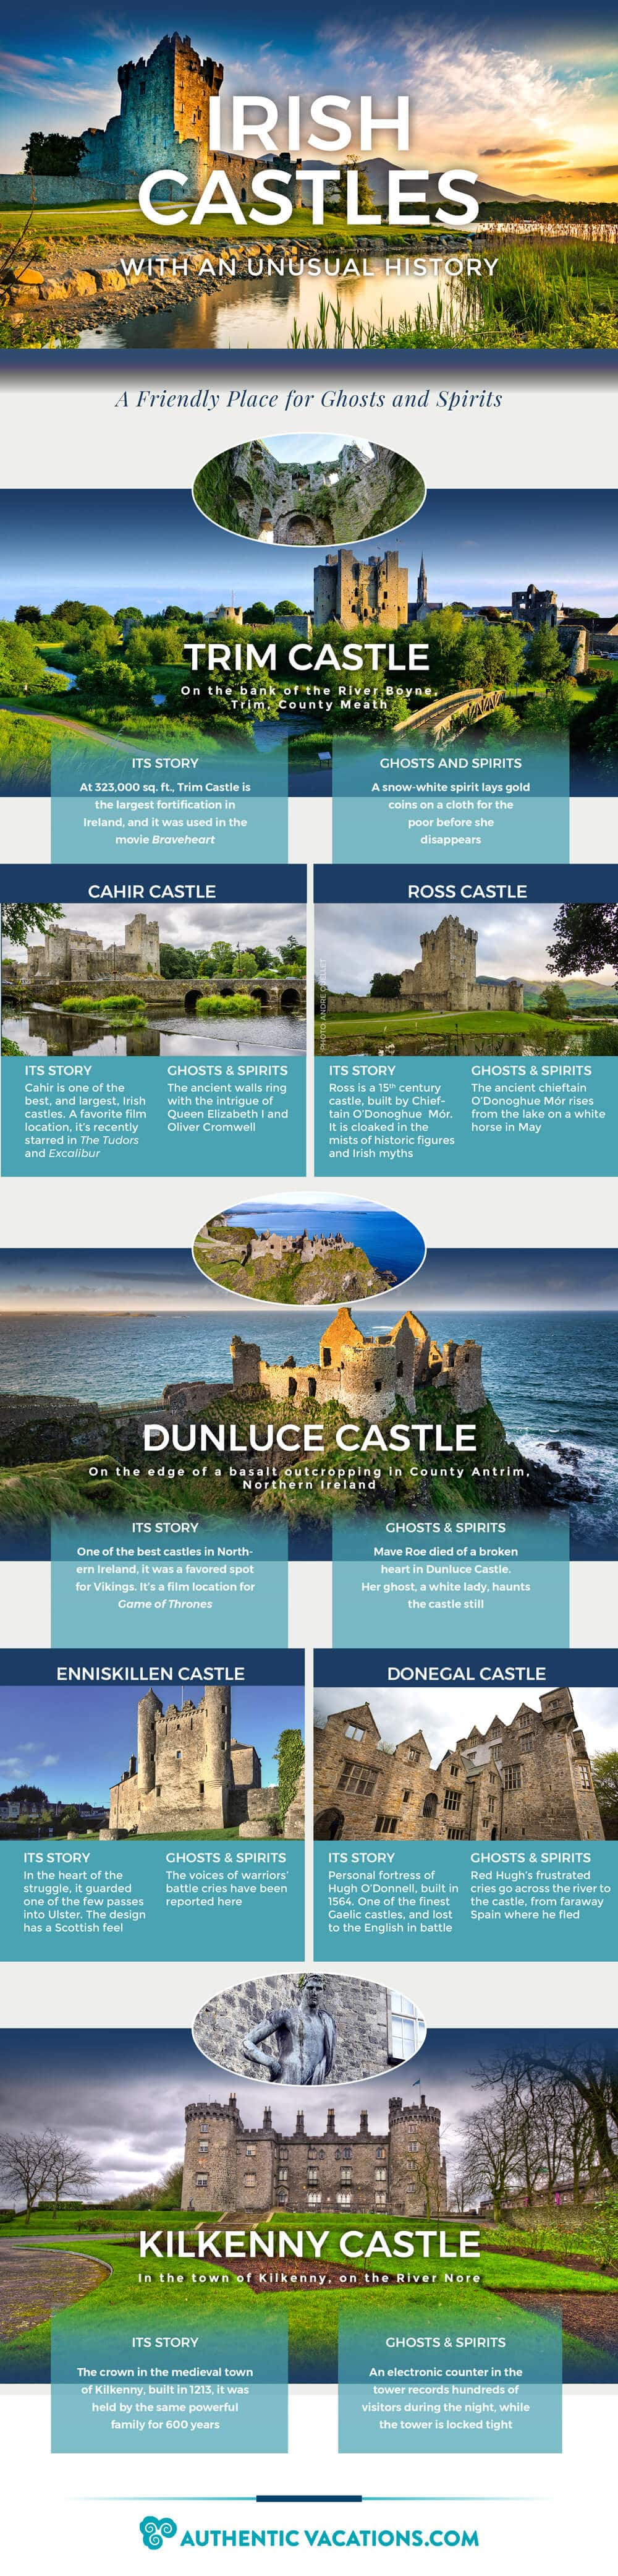 Irish Castles with an Unusual History